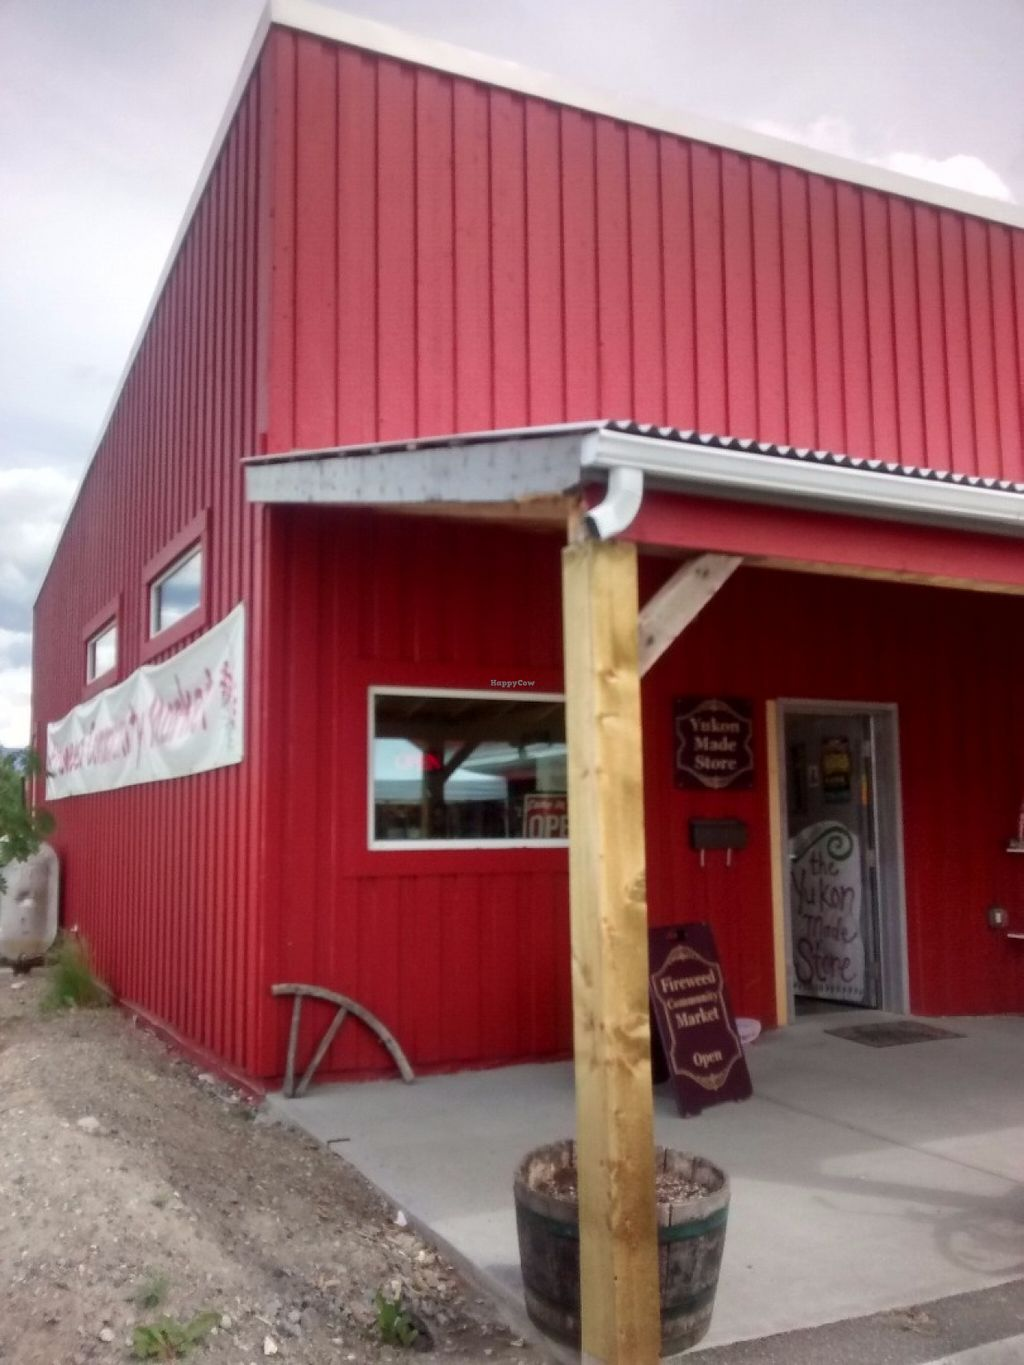 "Photo of Fireweed Community Market   by <a href=""/members/profile/QuothTheRaven"">QuothTheRaven</a> <br/>Market by Farmer Roberts  <br/> June 24, 2016  - <a href='/contact/abuse/image/75106/155808'>Report</a>"